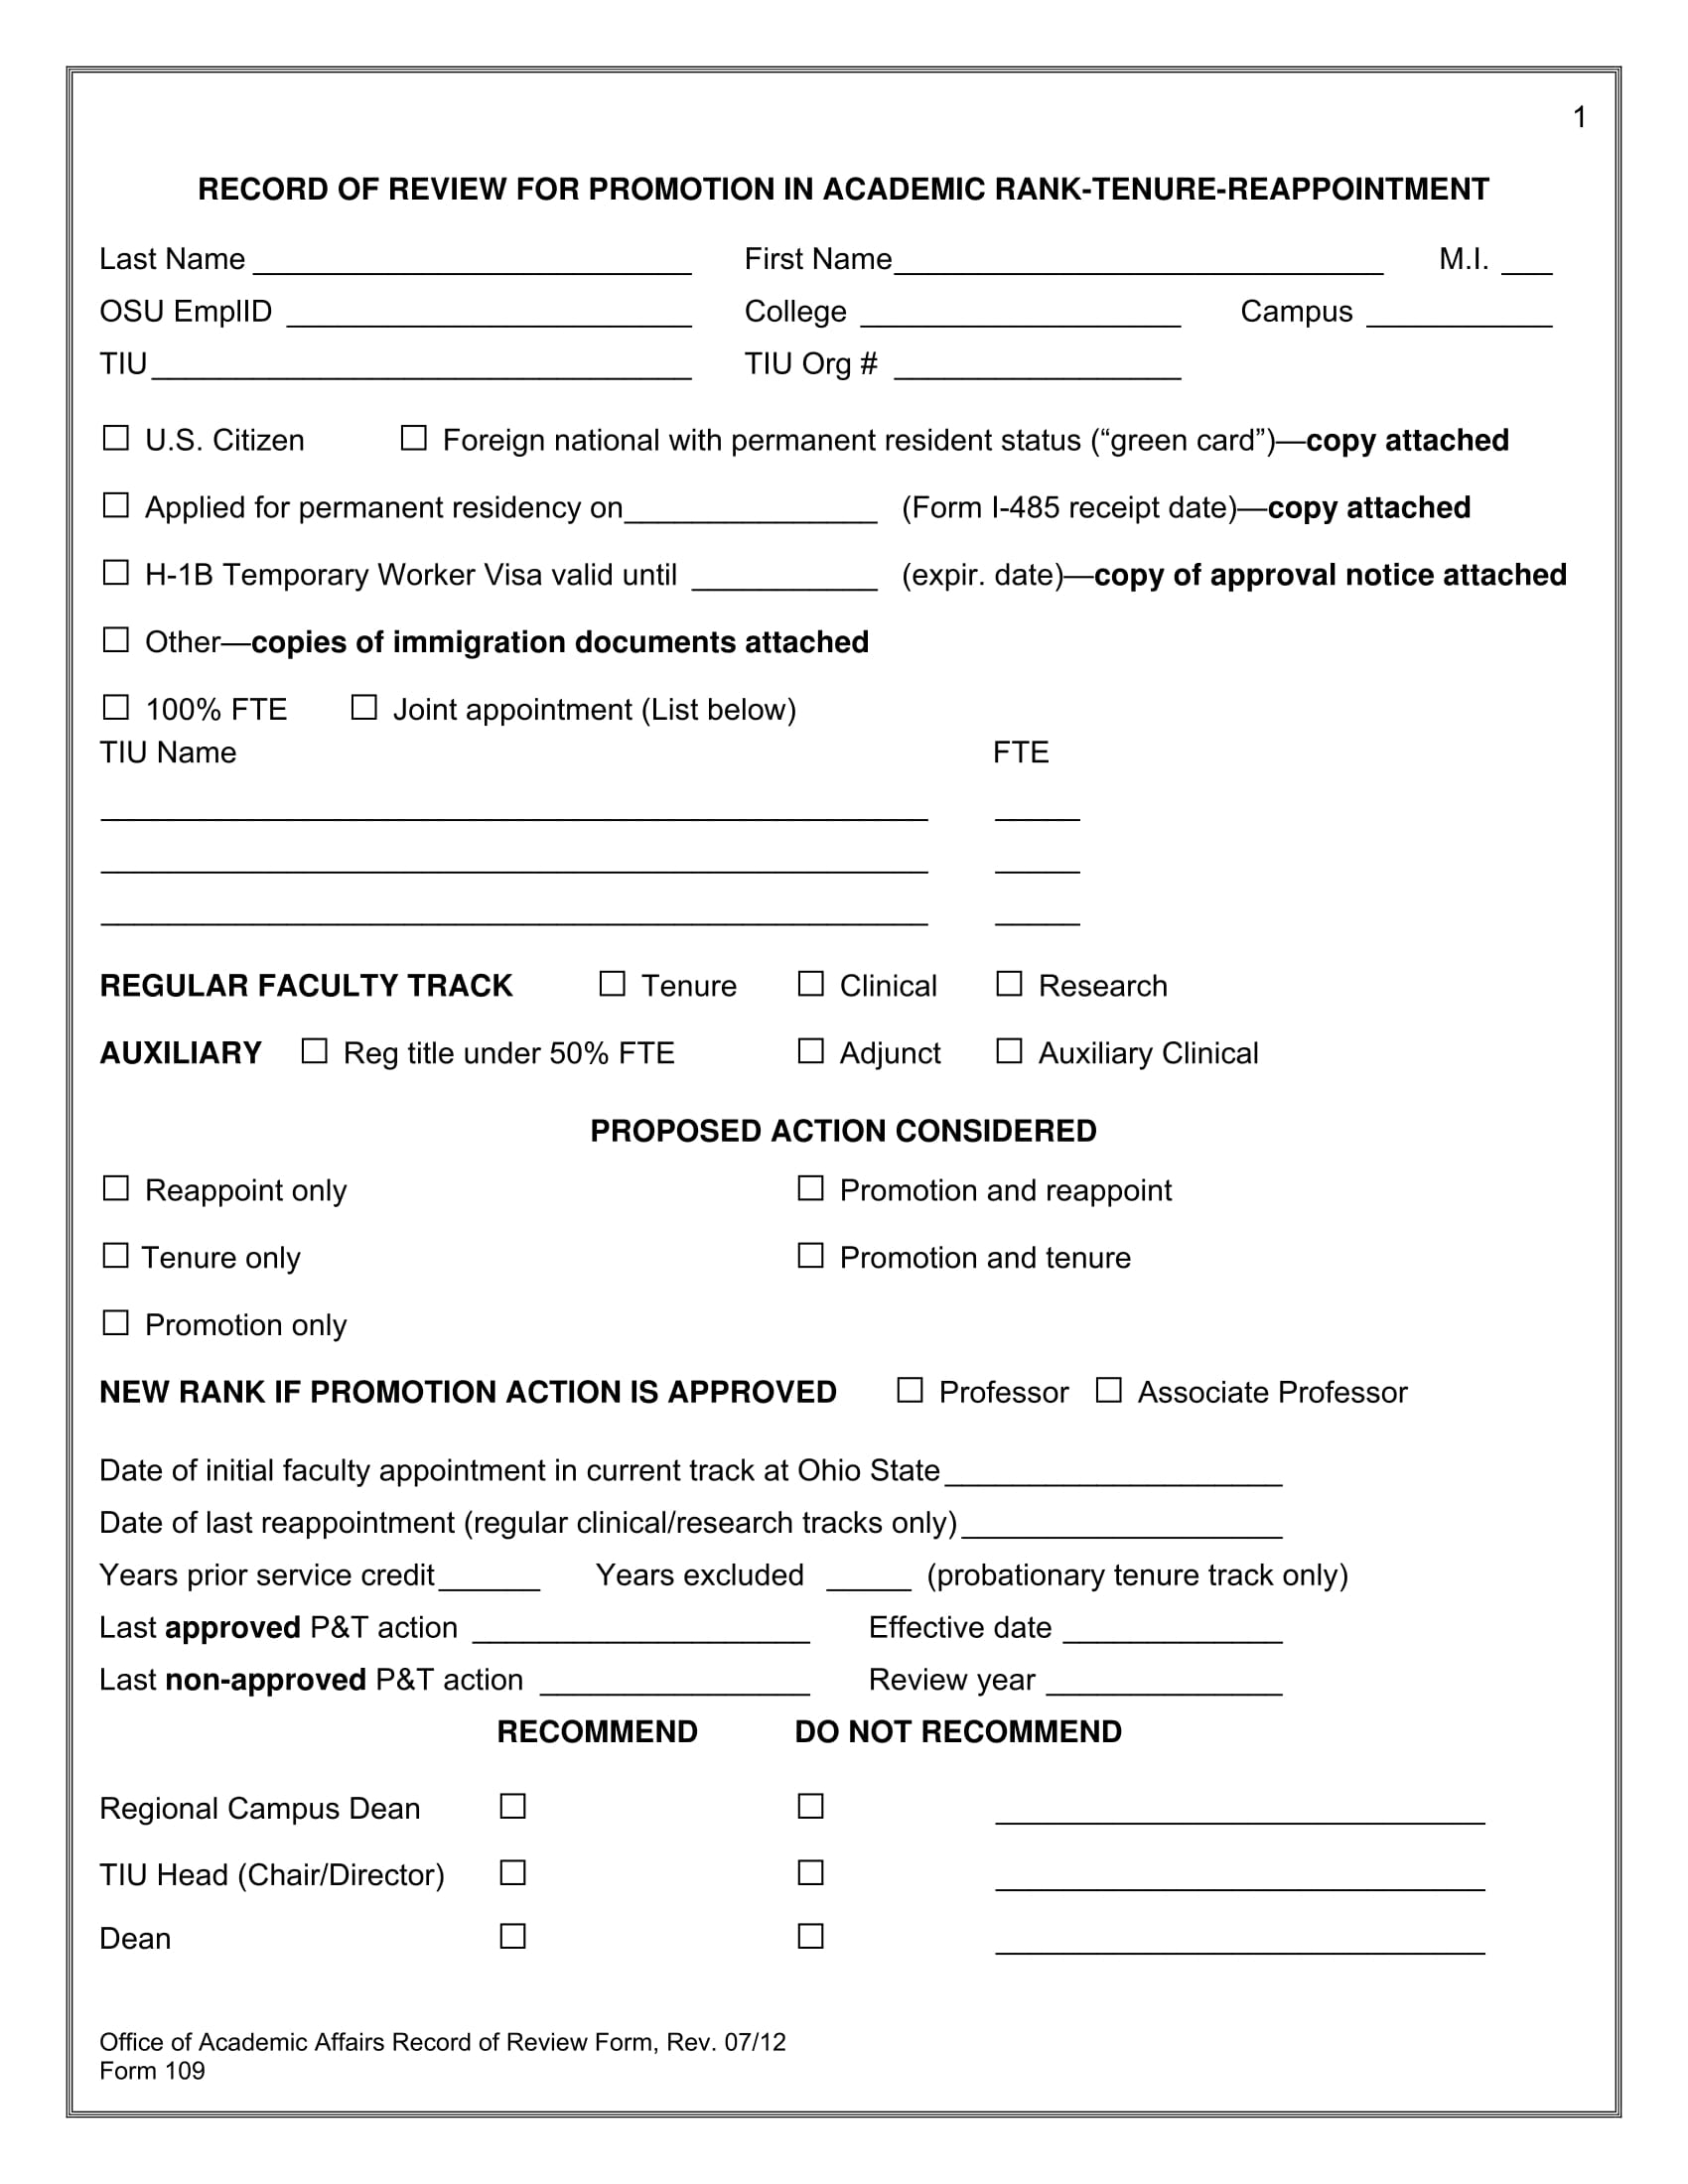 promotion record review form 1